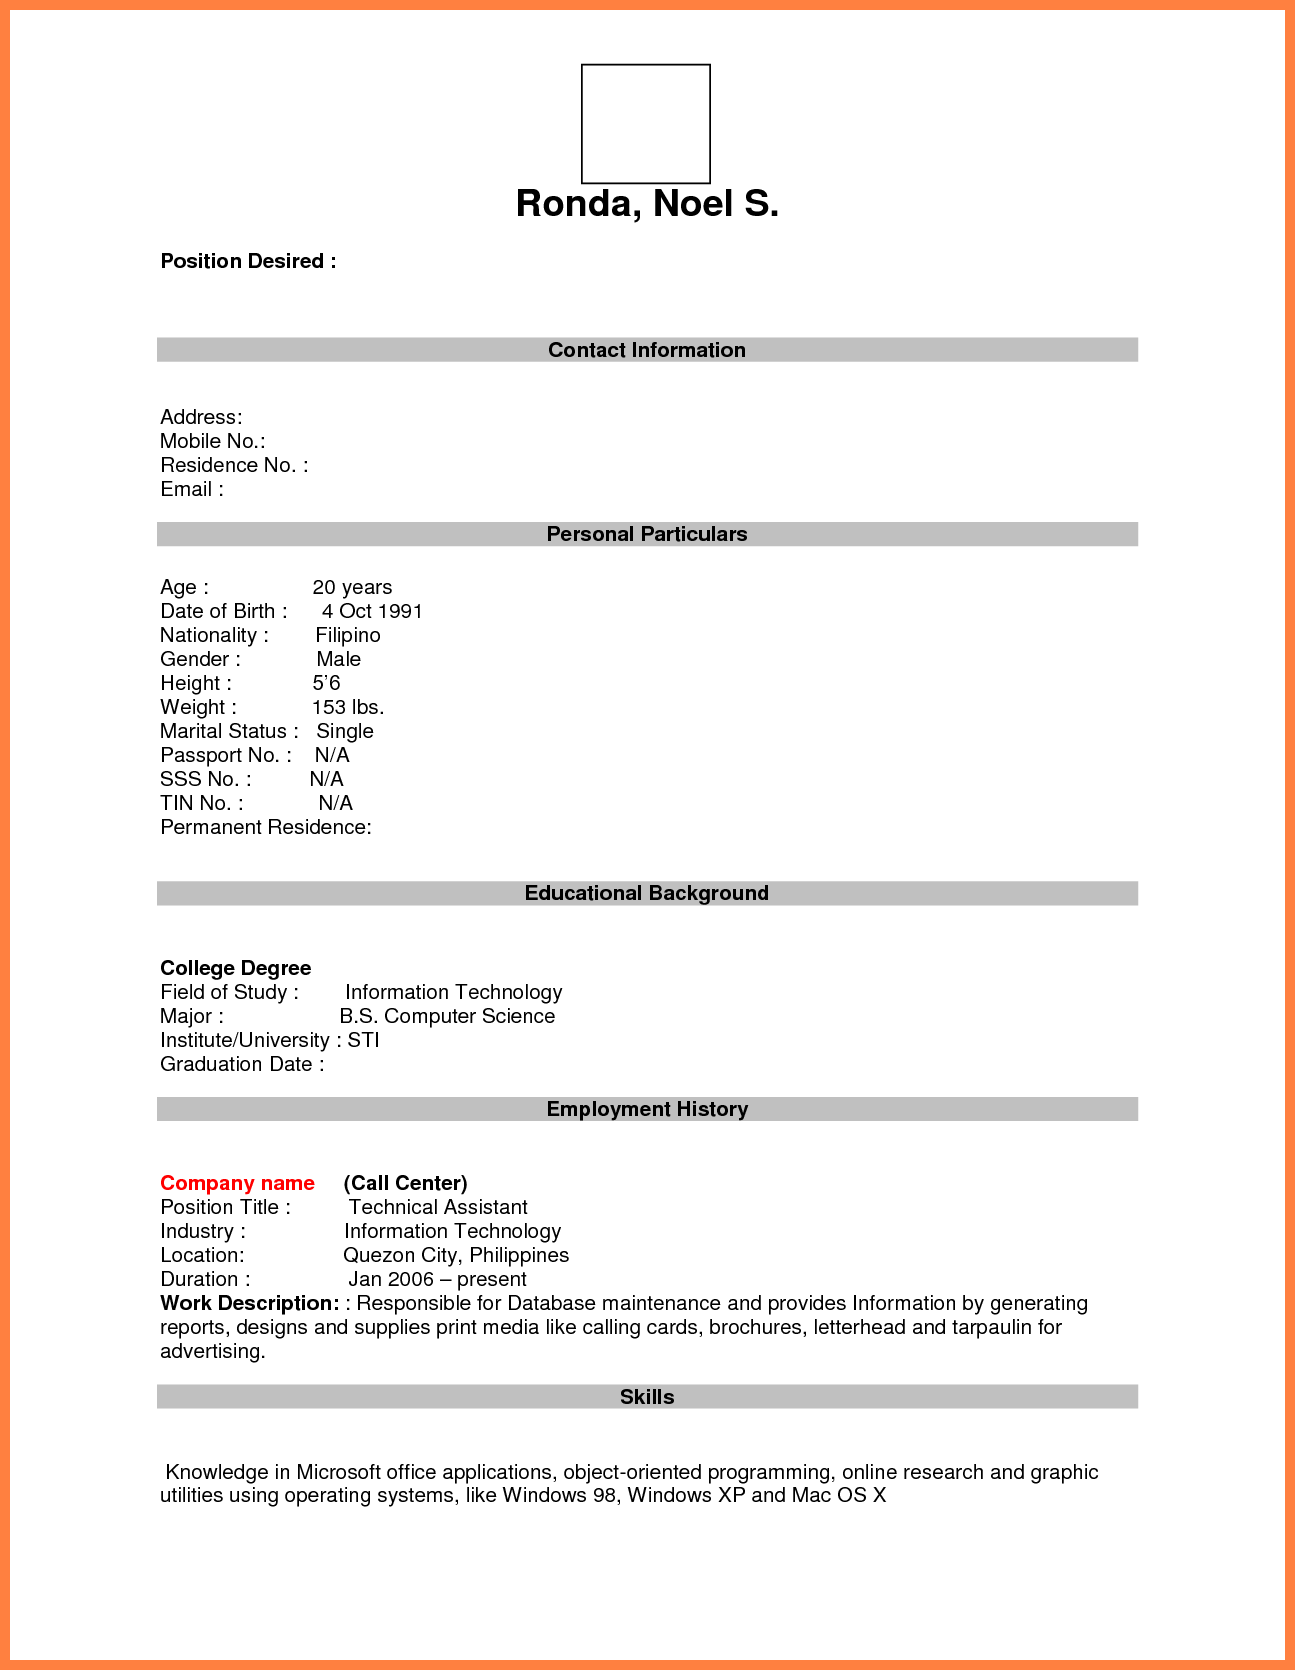 Format For Job Application Pdf Basic Appication Letter Blank Resume Form Bussines Proposal First Time Free Templat Resume Form Job Resume Template Basic Resume